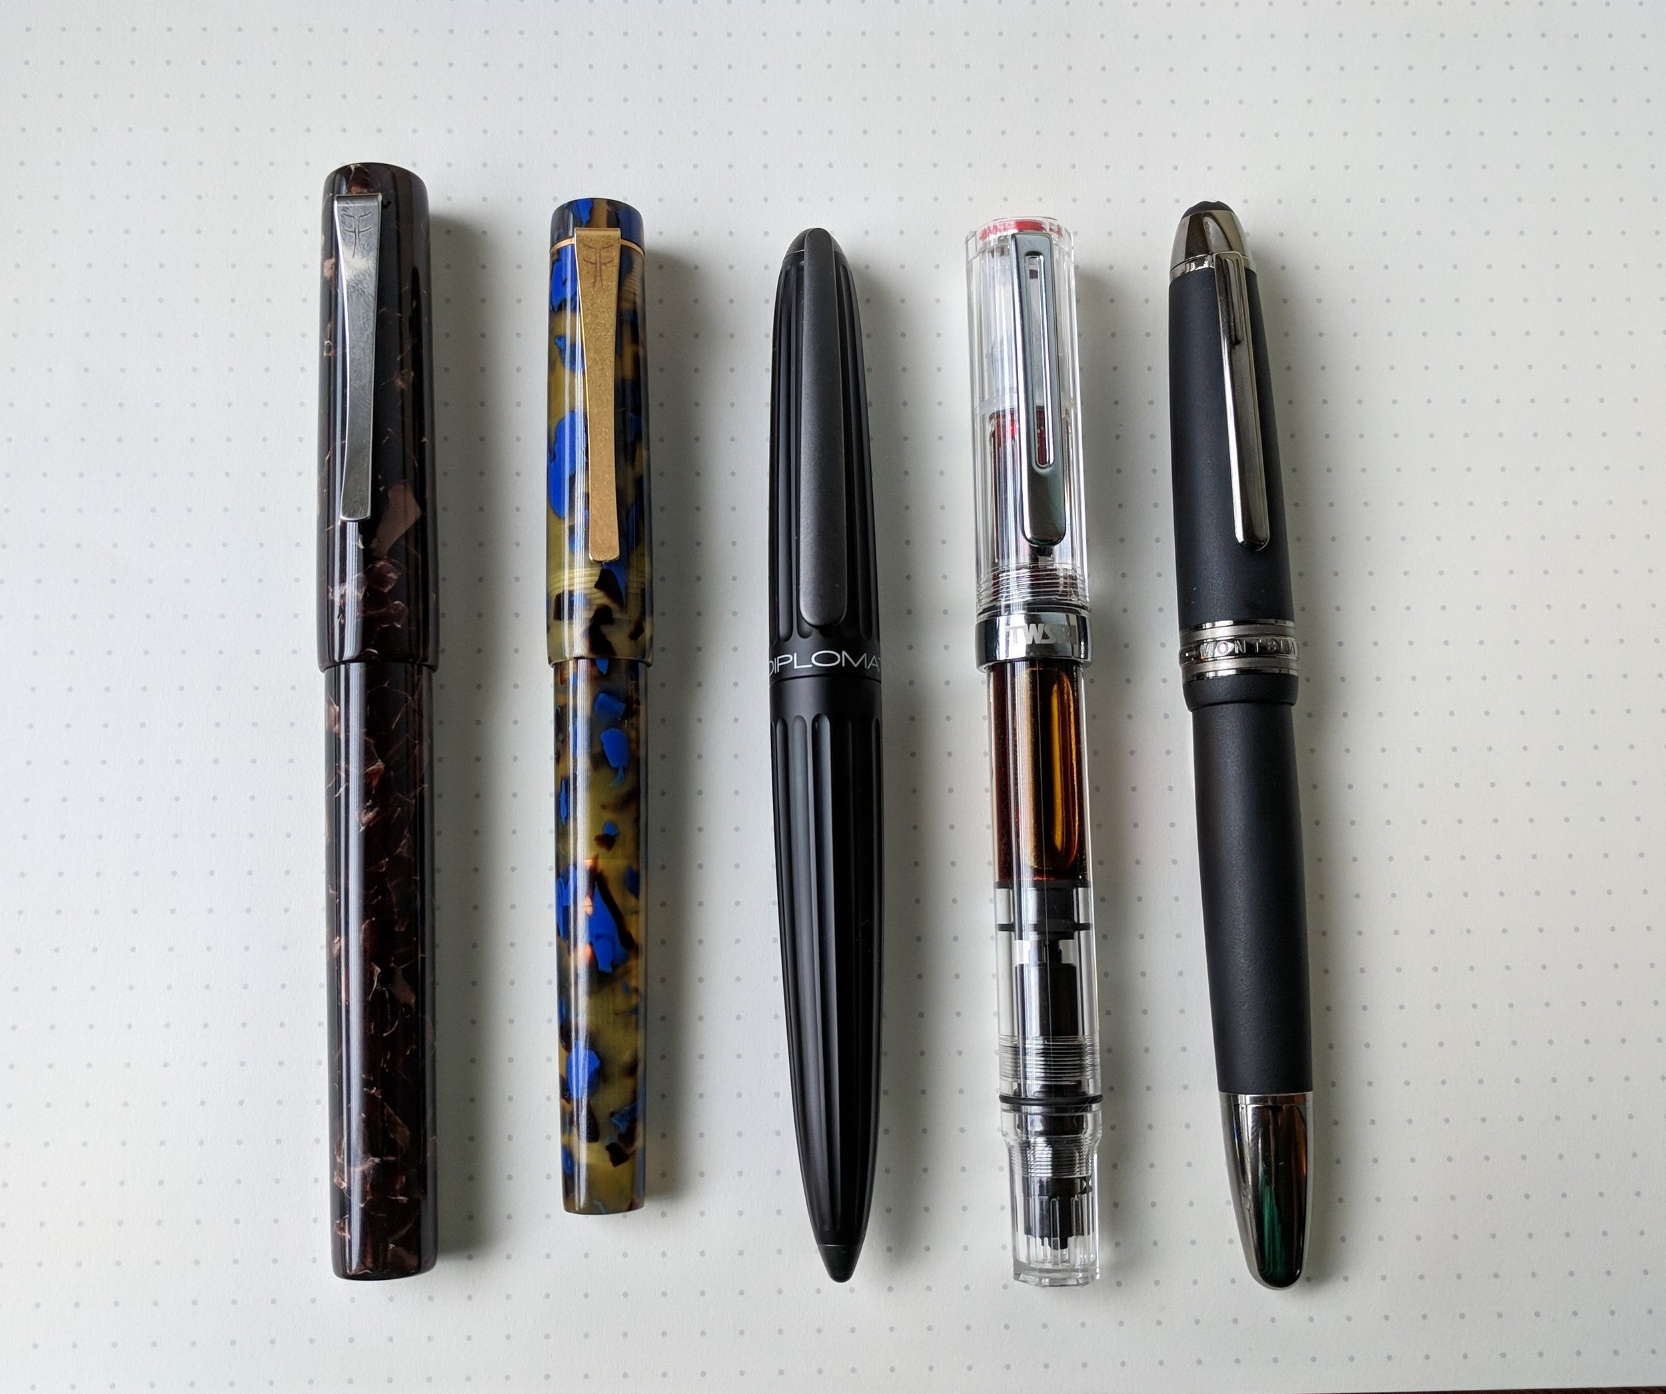 Some of the pens I've been using this week, including, from left, the Faggionato PKS and Petrarque. Link to the review below.